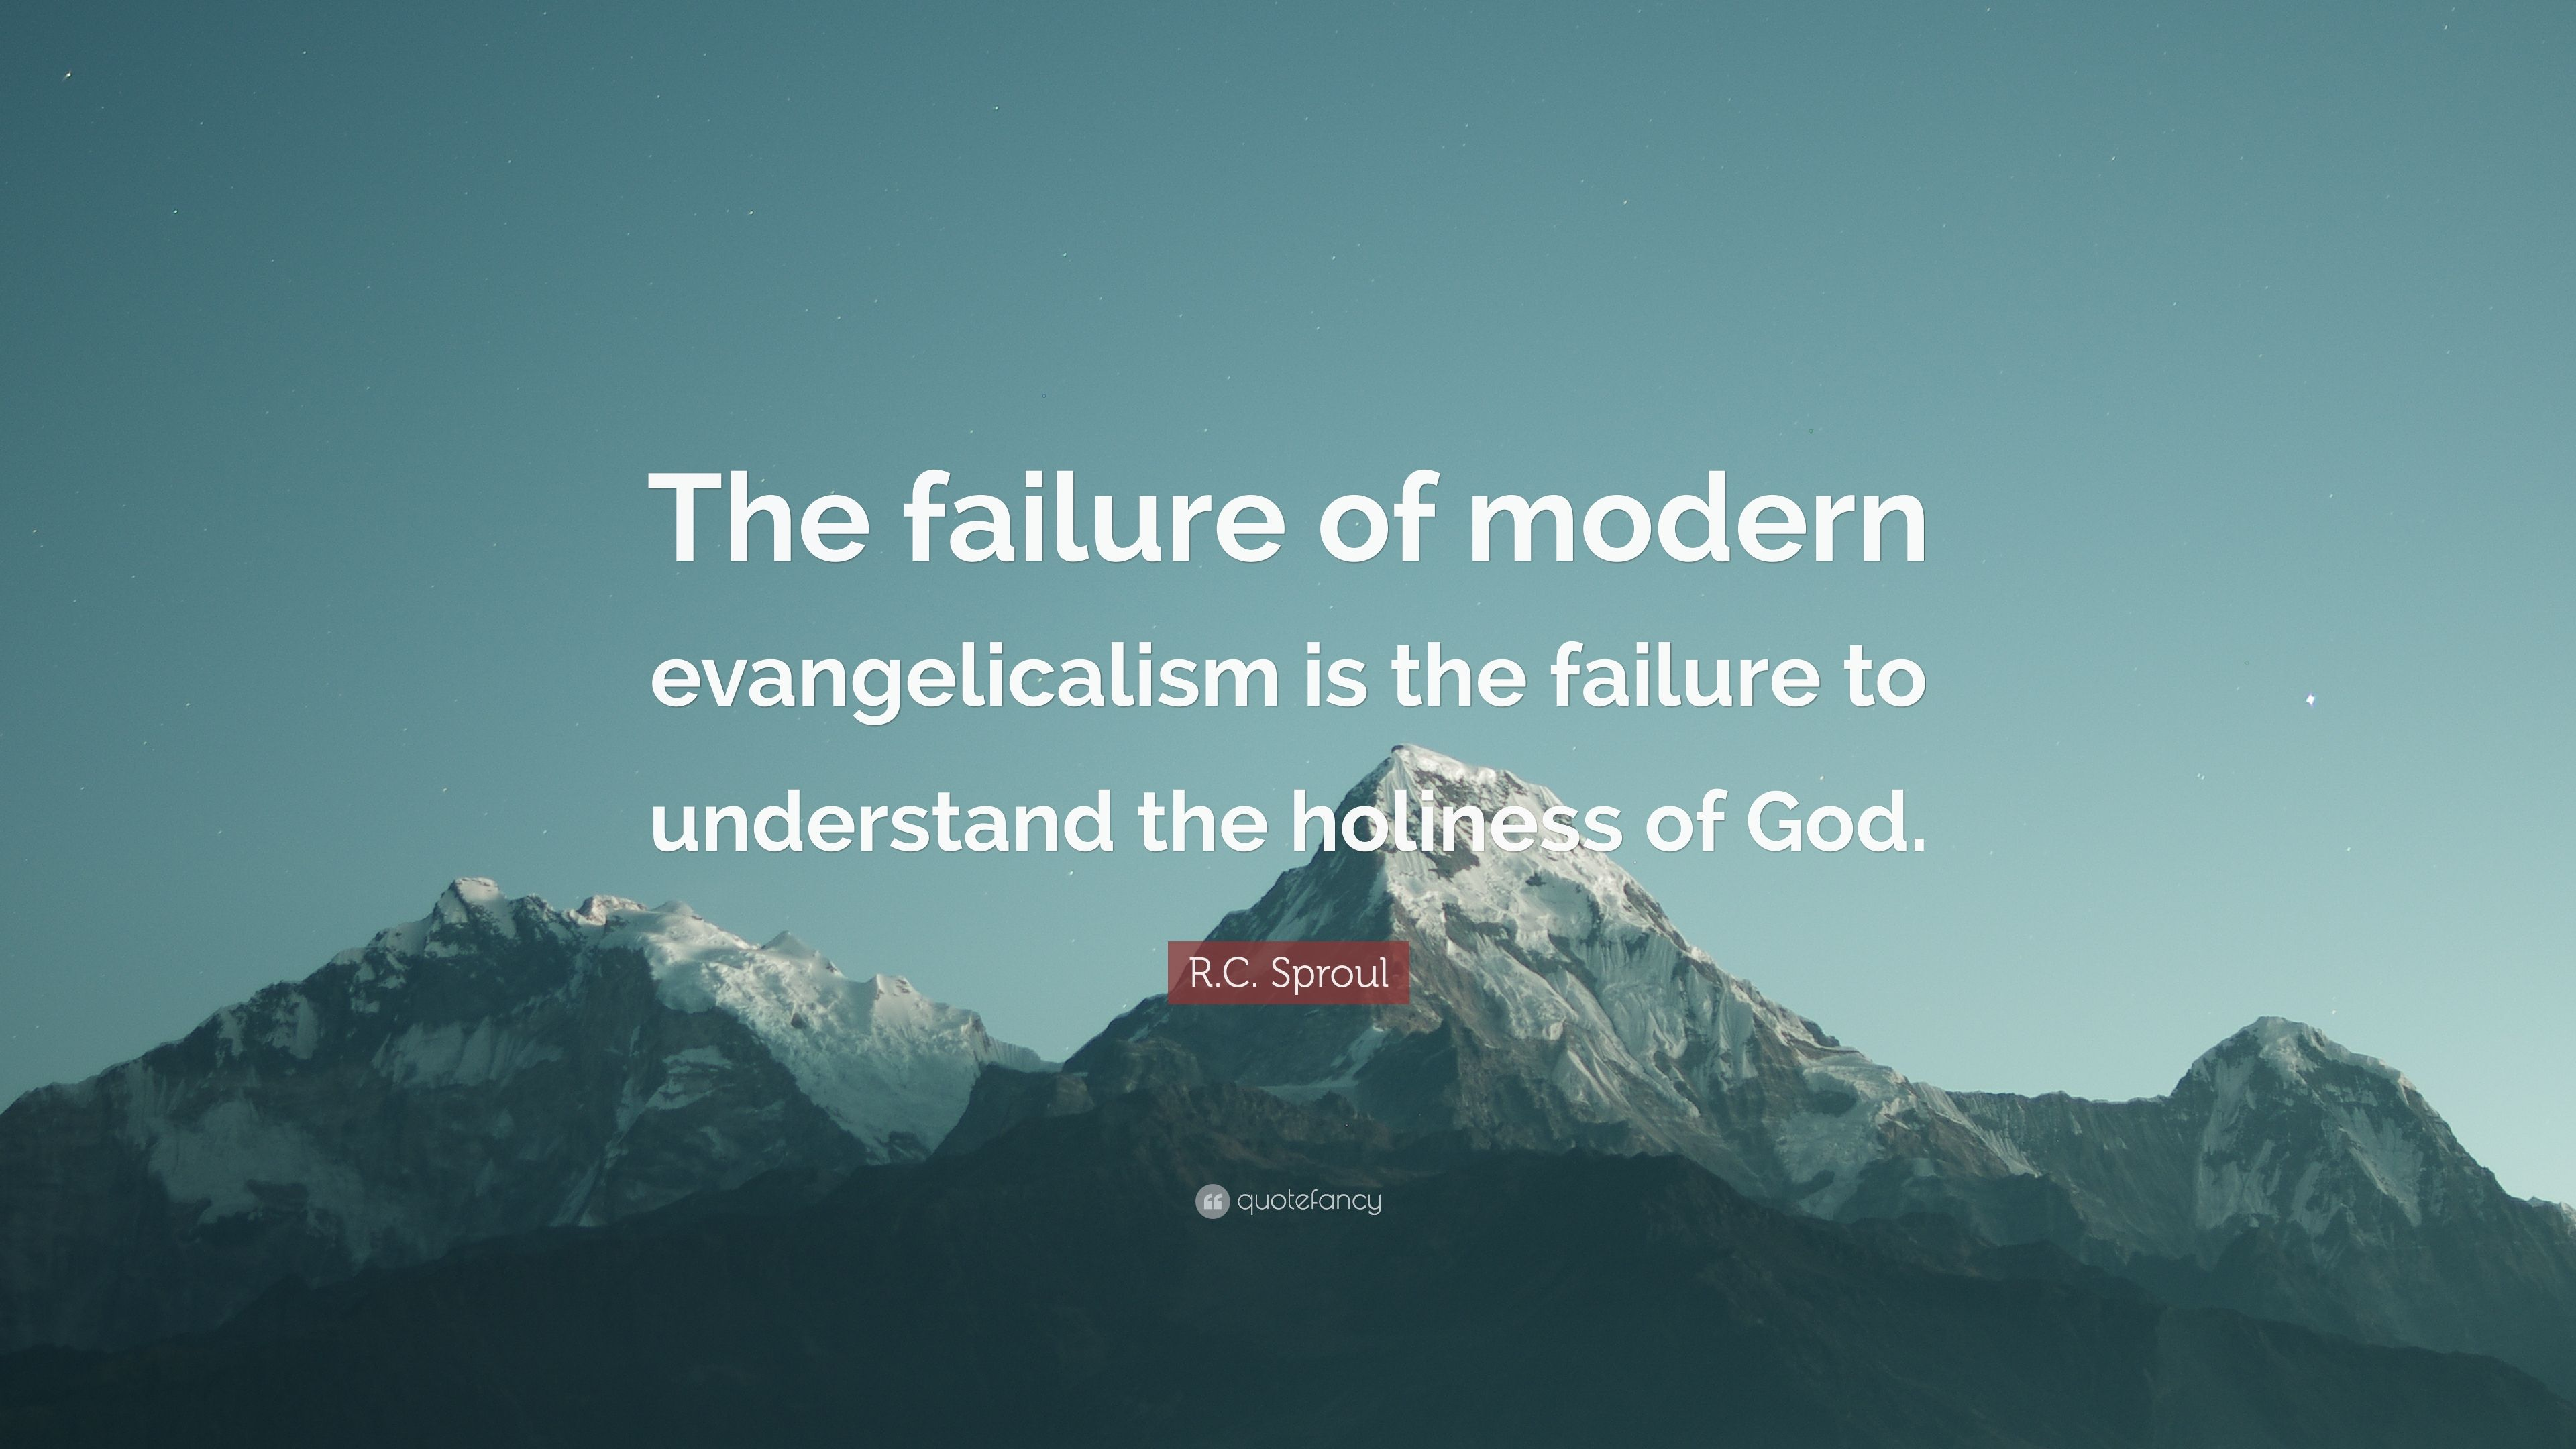 R C Sproul Quote The Failure Of Modern Evangelicalism Is The Failure To Understand The Holiness Of God 7 Wallpapers Quotefancy